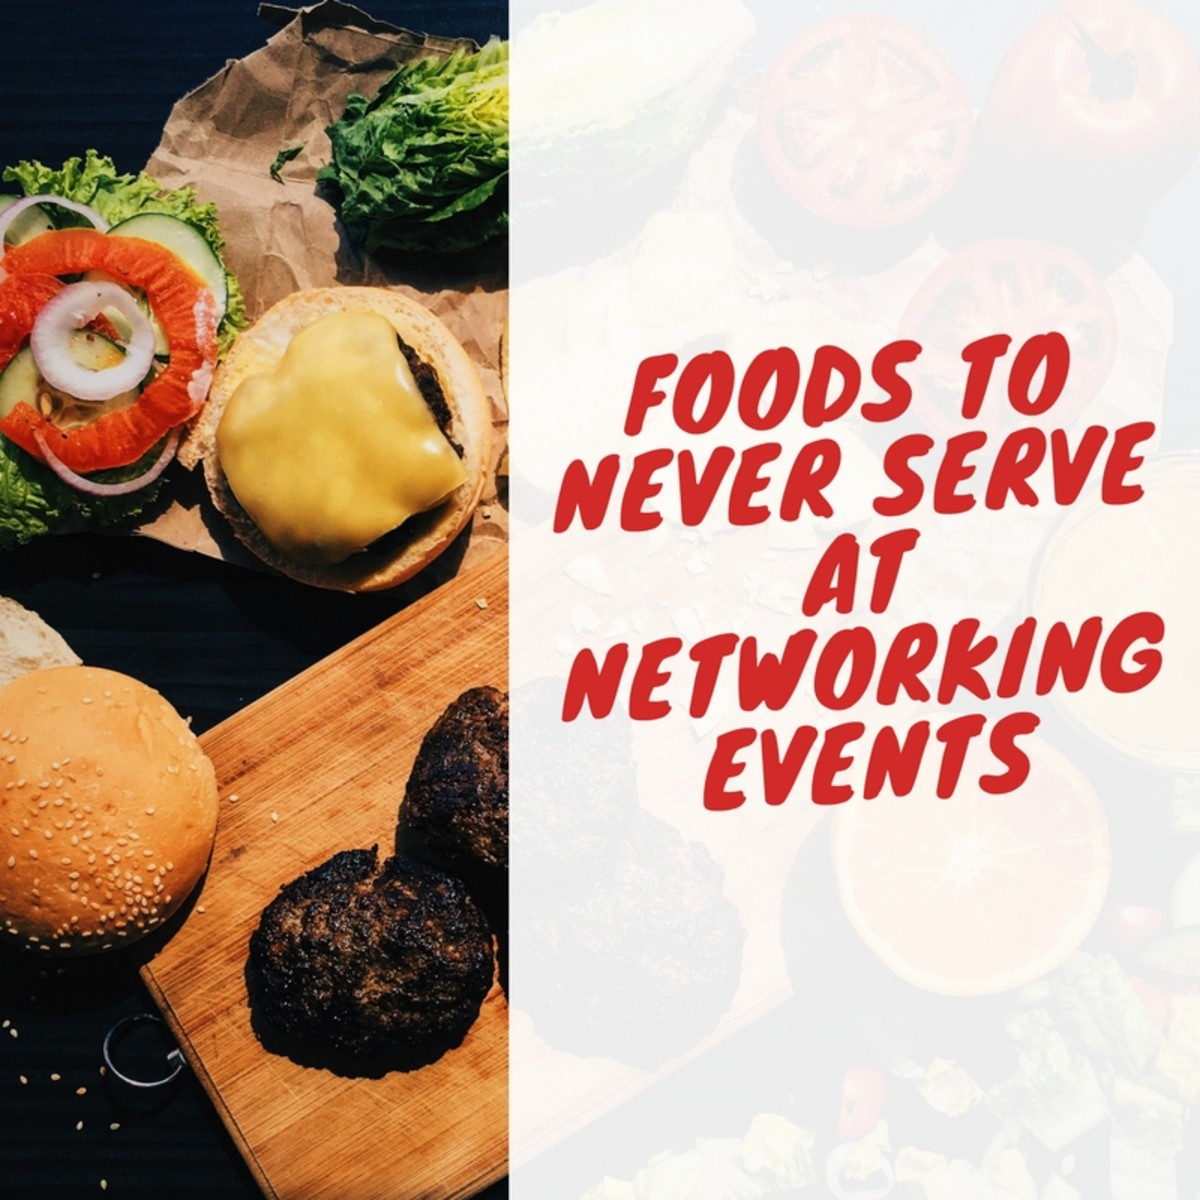 Foods to Never Serve at Networking Events